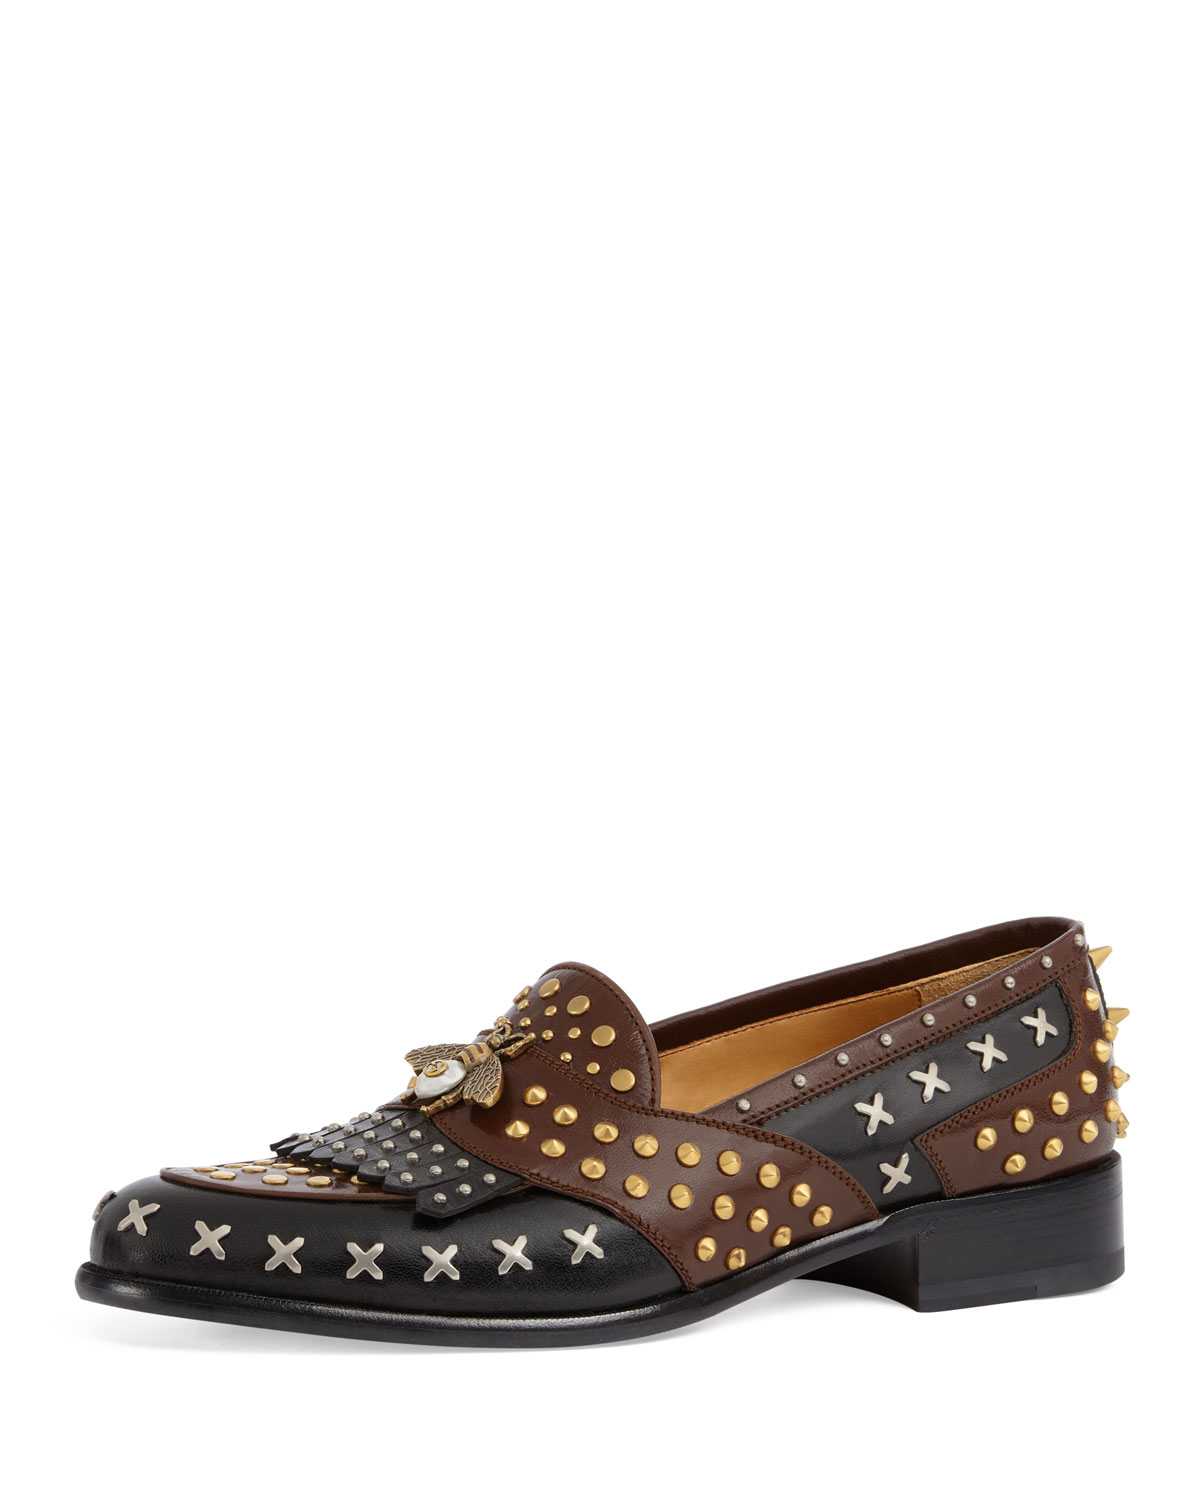 Gucci Studded Leather Loafer | Neiman